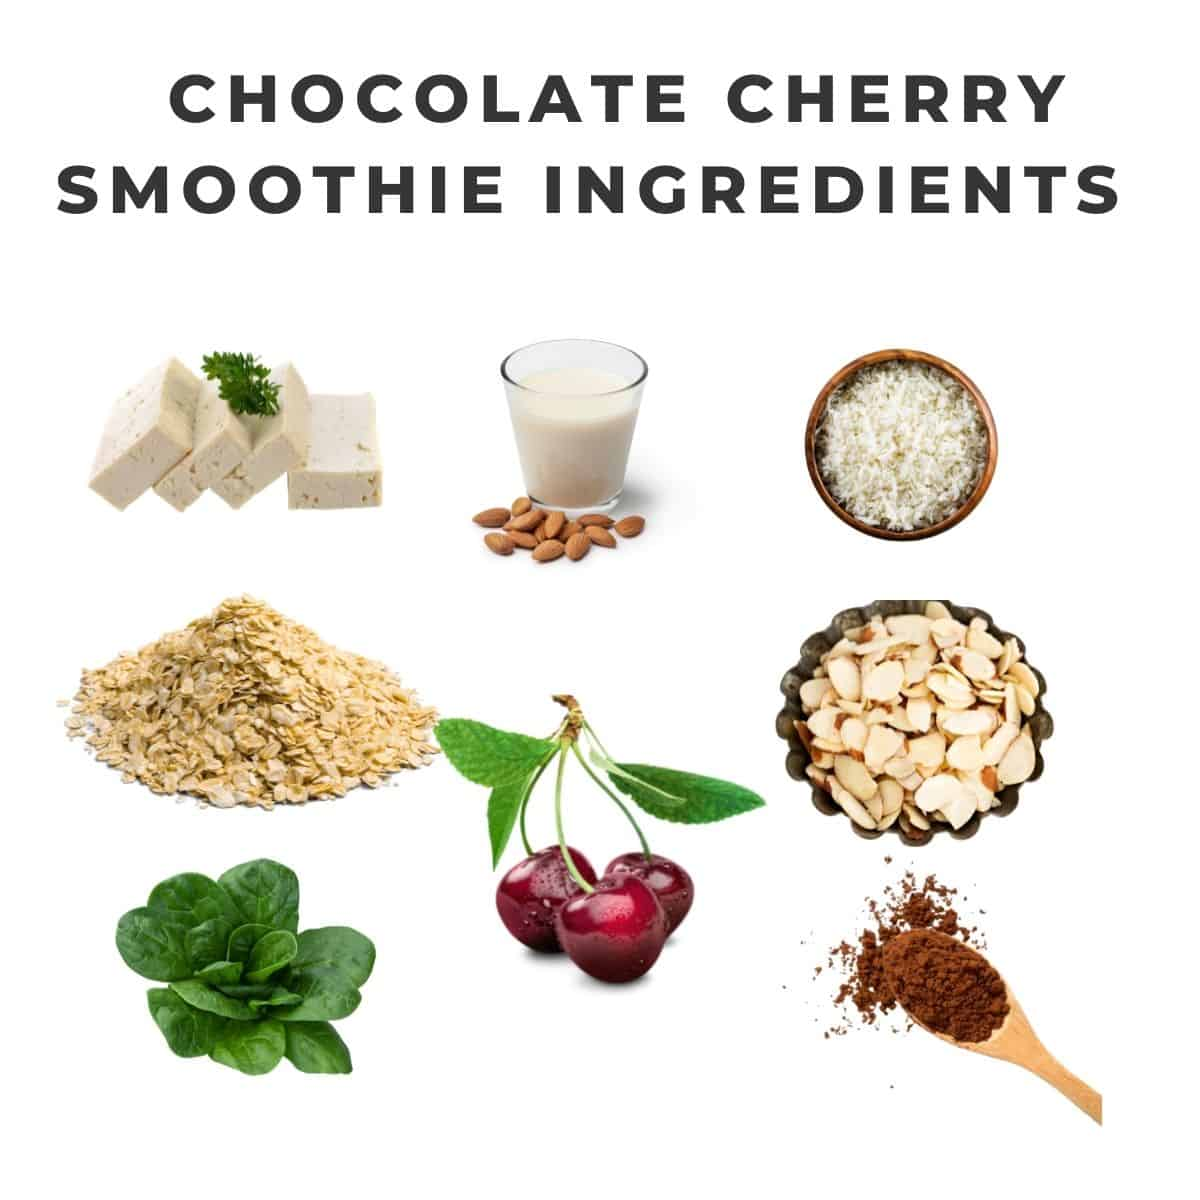 Ingredients in chocolate cherry smoothies: spinach, cherries, cocoa powder, almonds, almond milk, tofu, riced cauliflower, oats